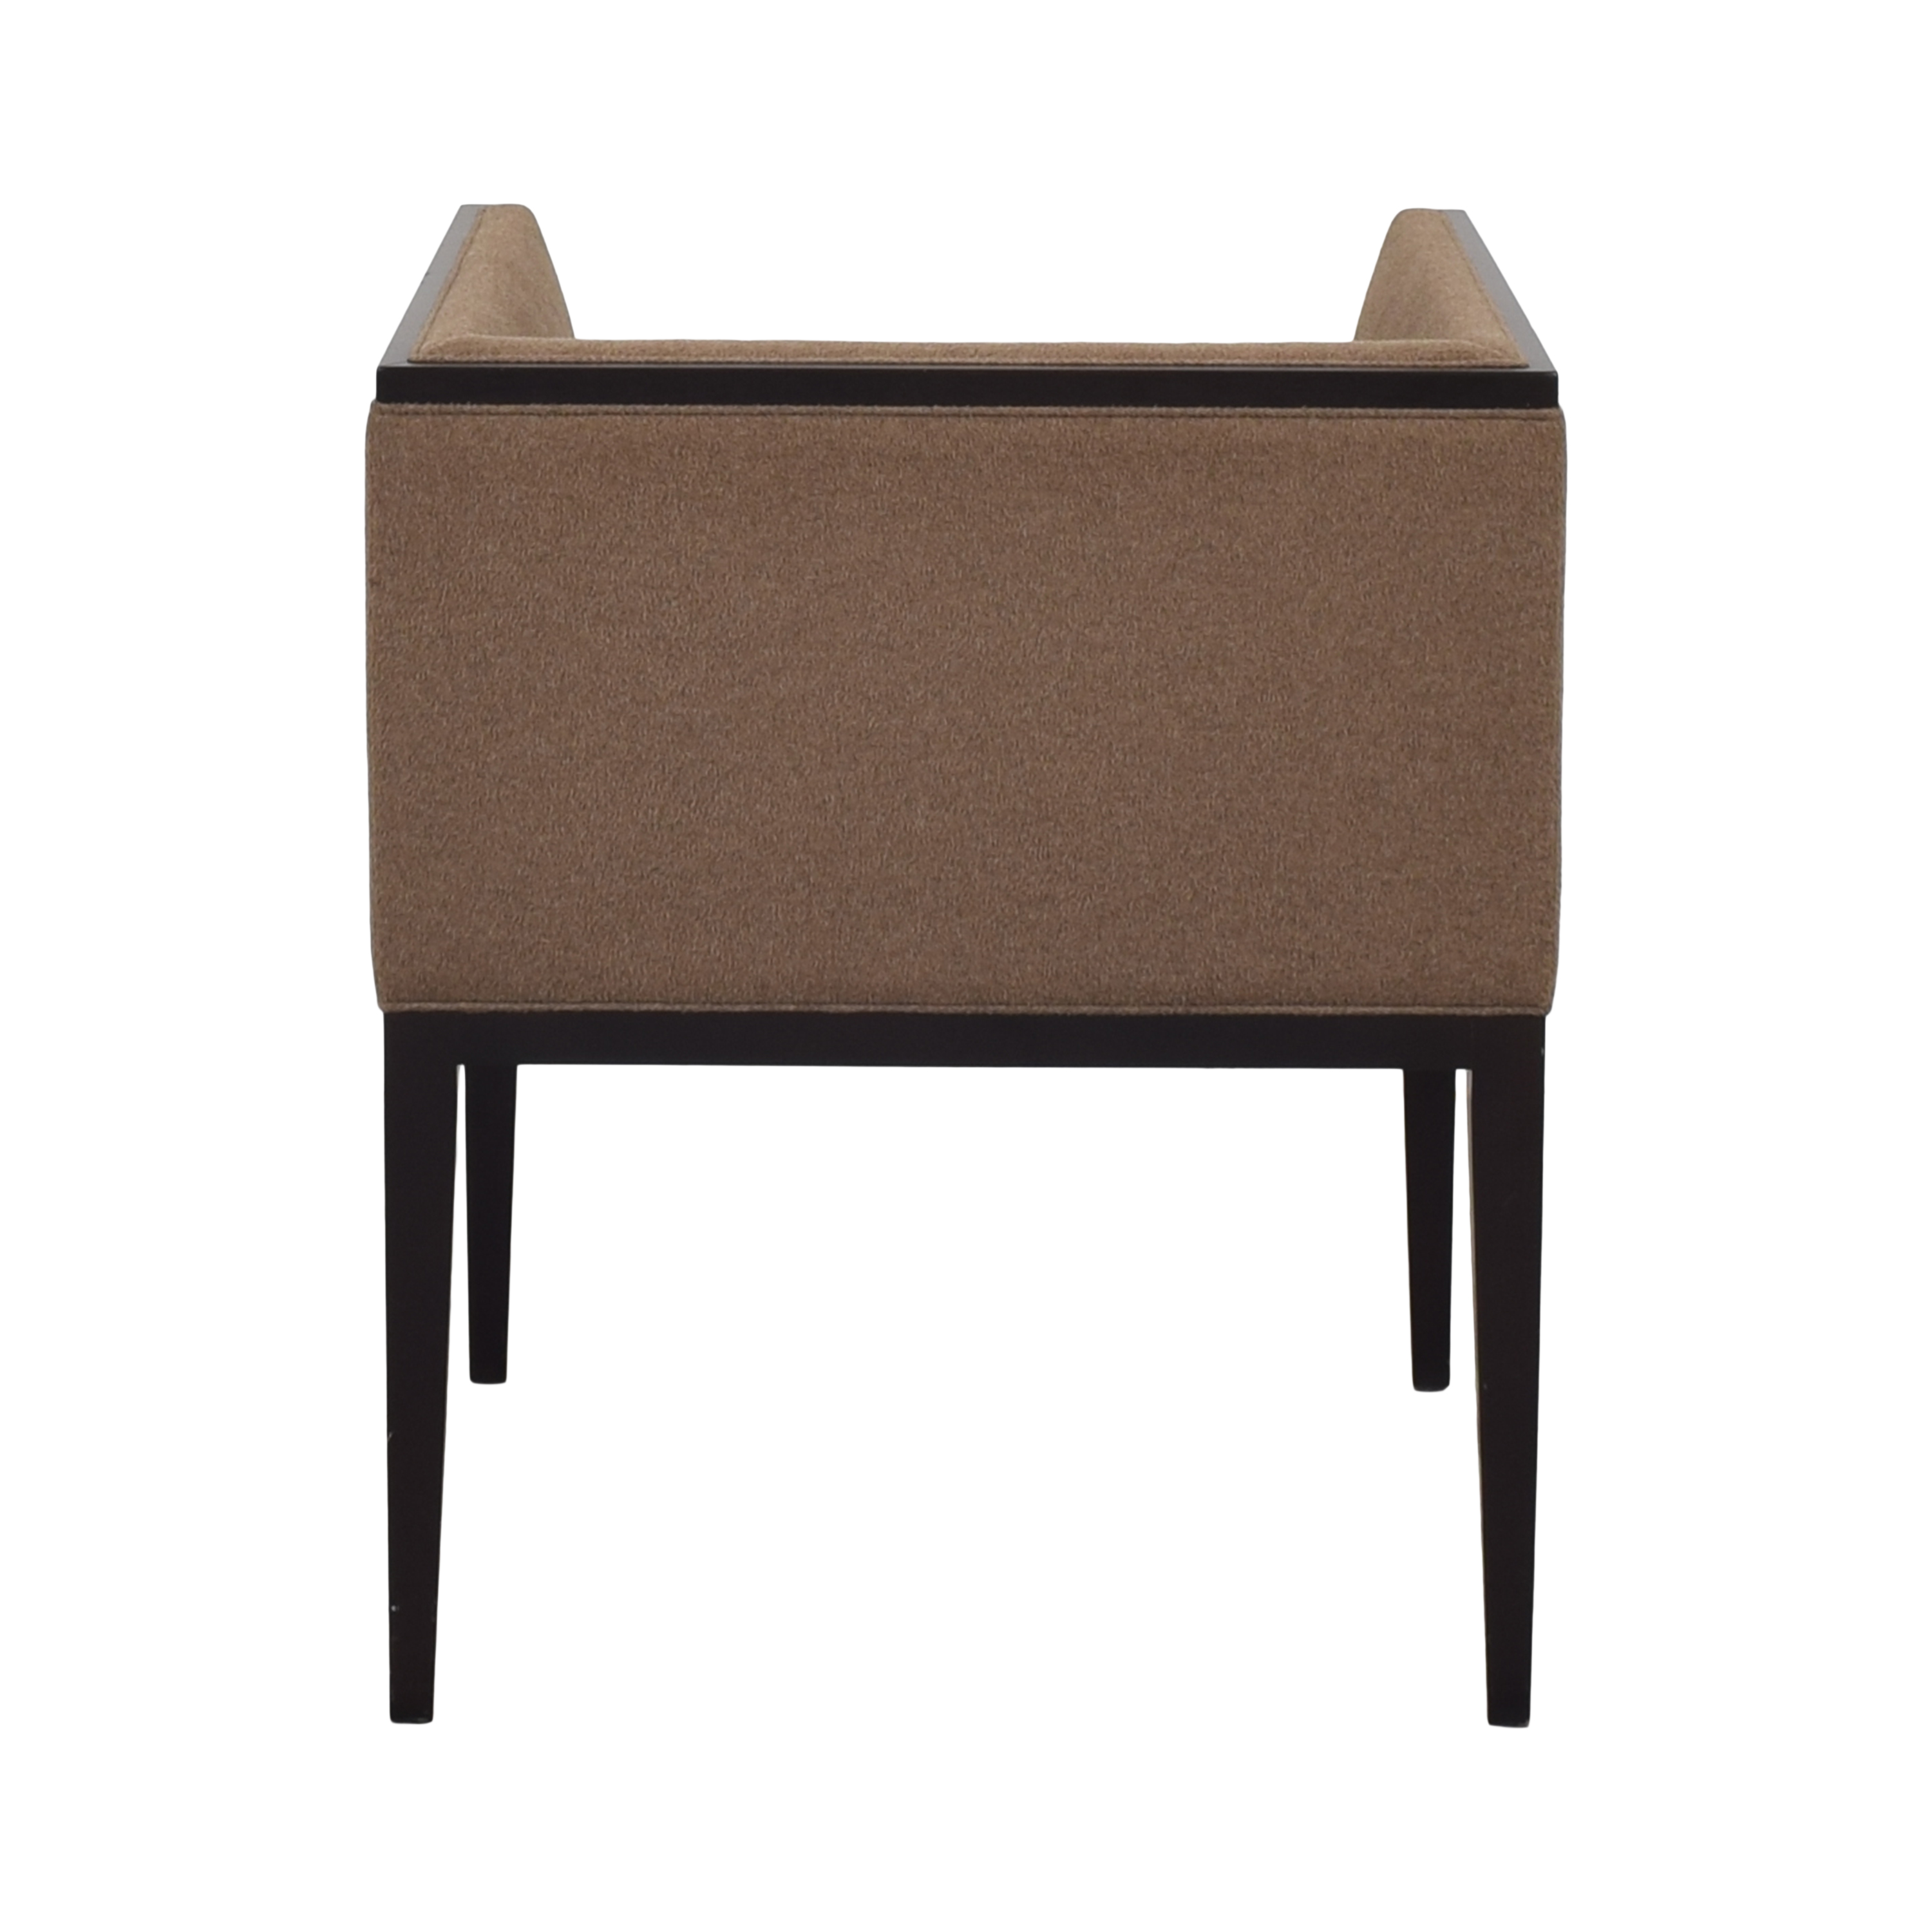 Hudson Furniture & Bedding Hudson Furniture & Bedding Contemporary Dining Chair ma